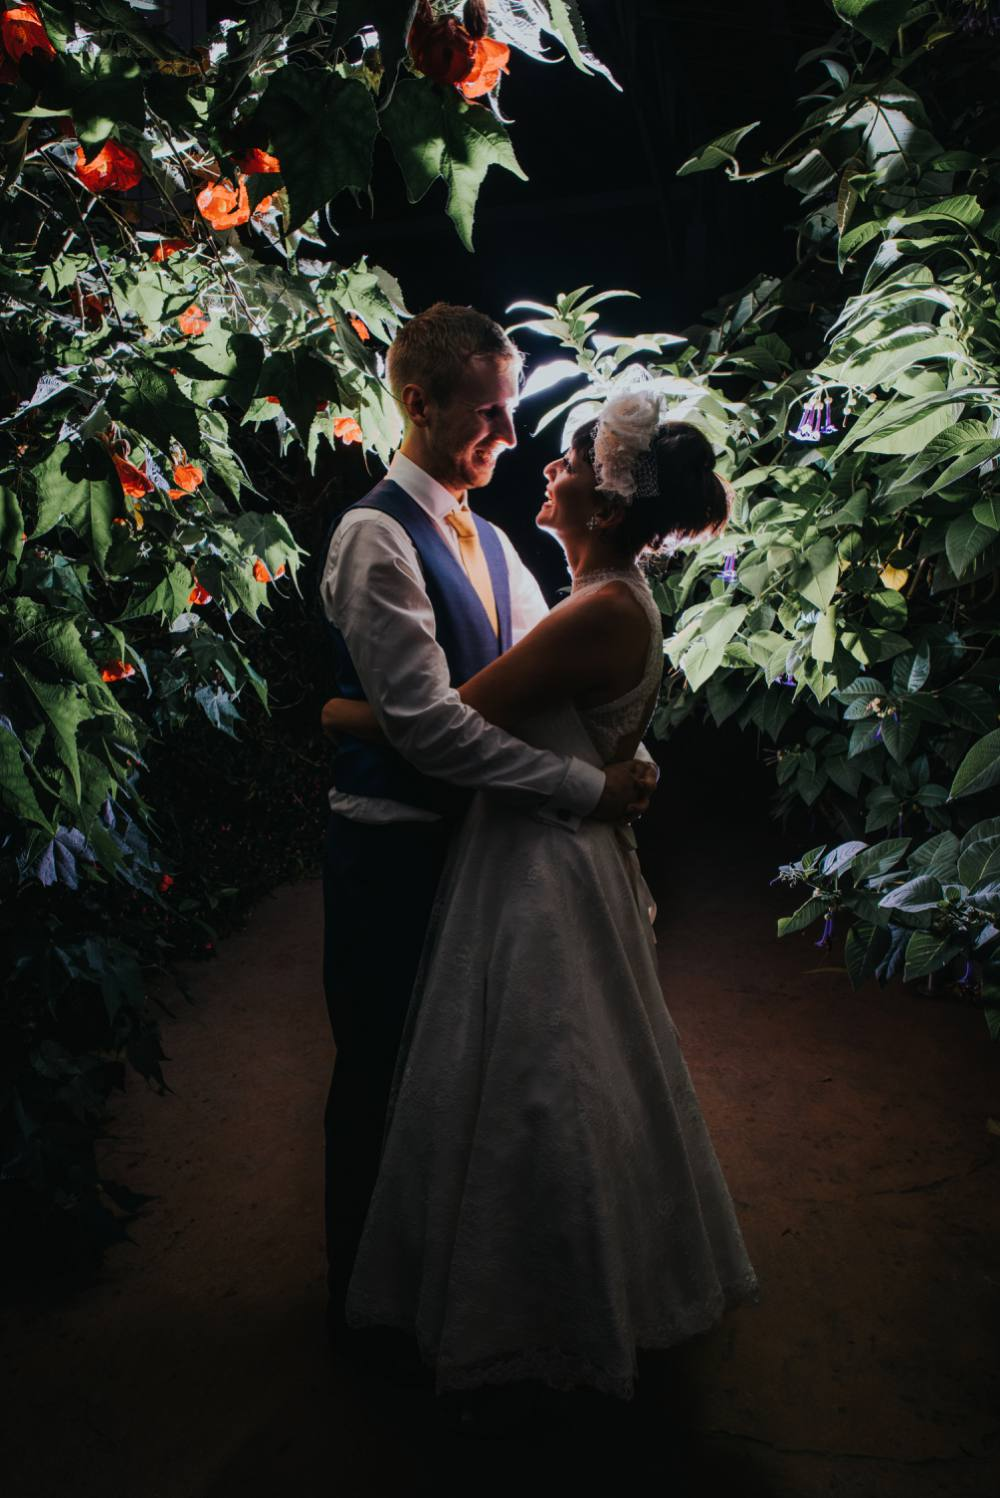 bride and grrom hugging at night in glass house